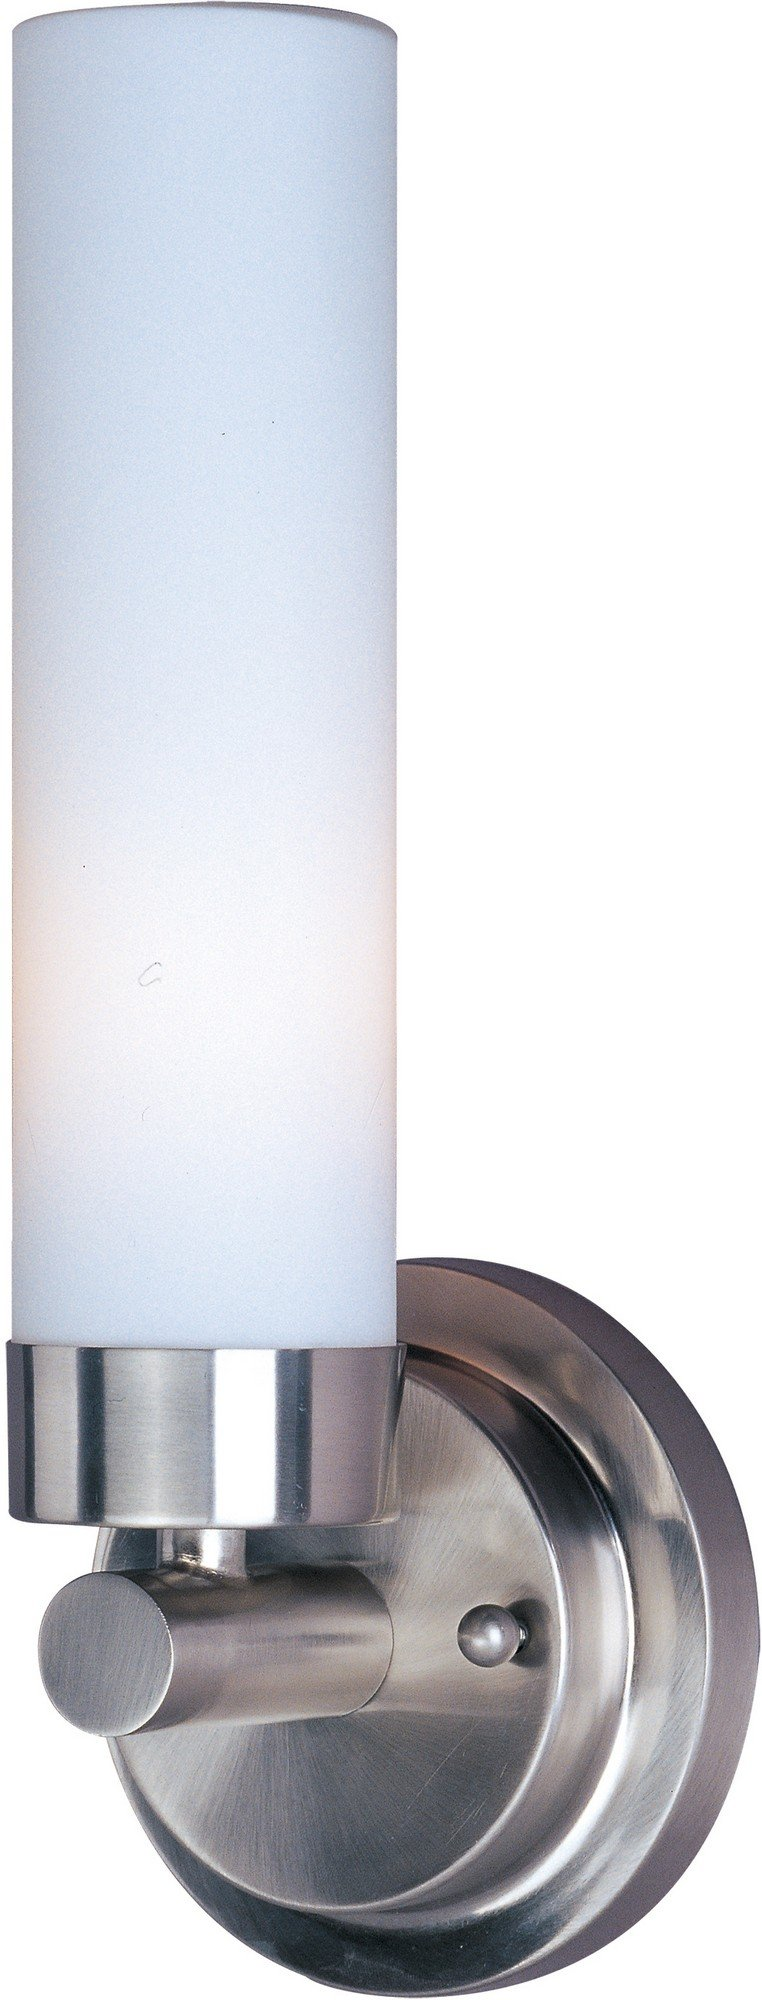 ET2 E53006-11 Cilandro 1-Light Wall Sconce, Satin Nickel Finish, Matte White Glass, MB T10 Incandescent Incandescent Bulb, Wet Safety Rated, 3000K Color Temp., Shade Material, 588 Rated Lumens